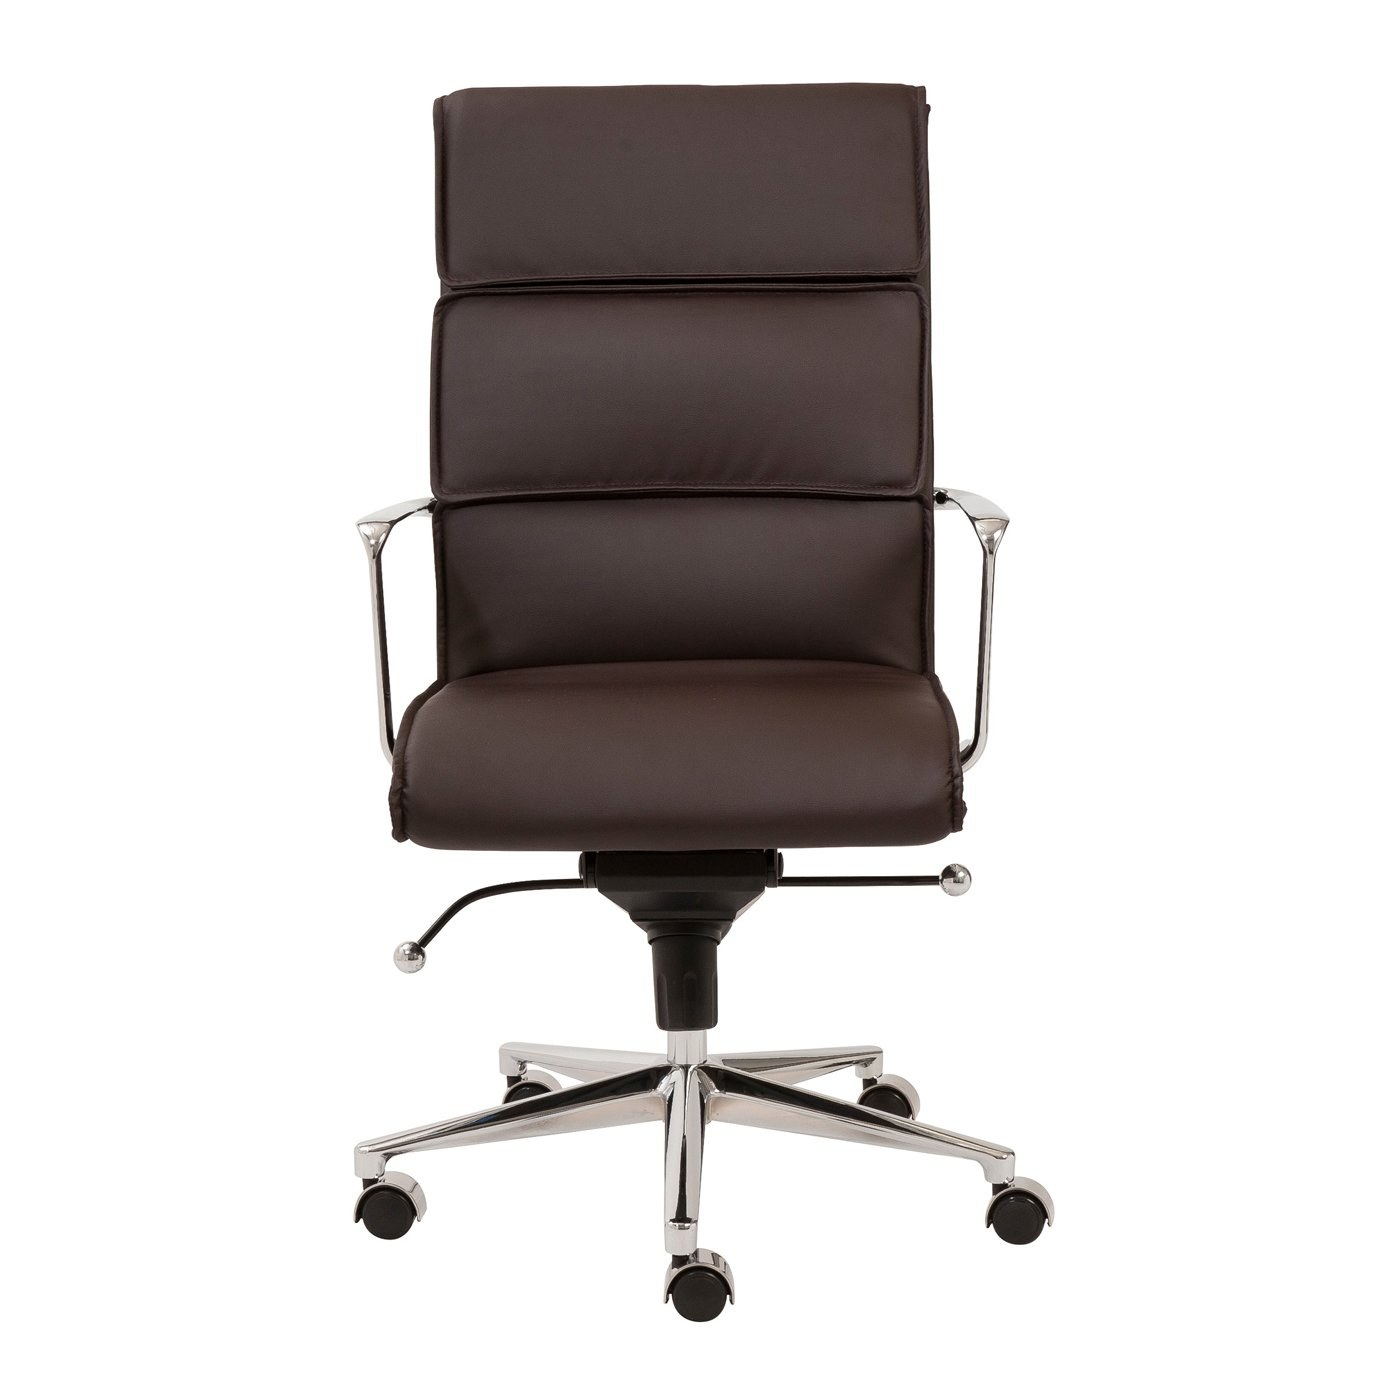 Office Chair Styles Leif High Back Office Chair With Brown Leatherette